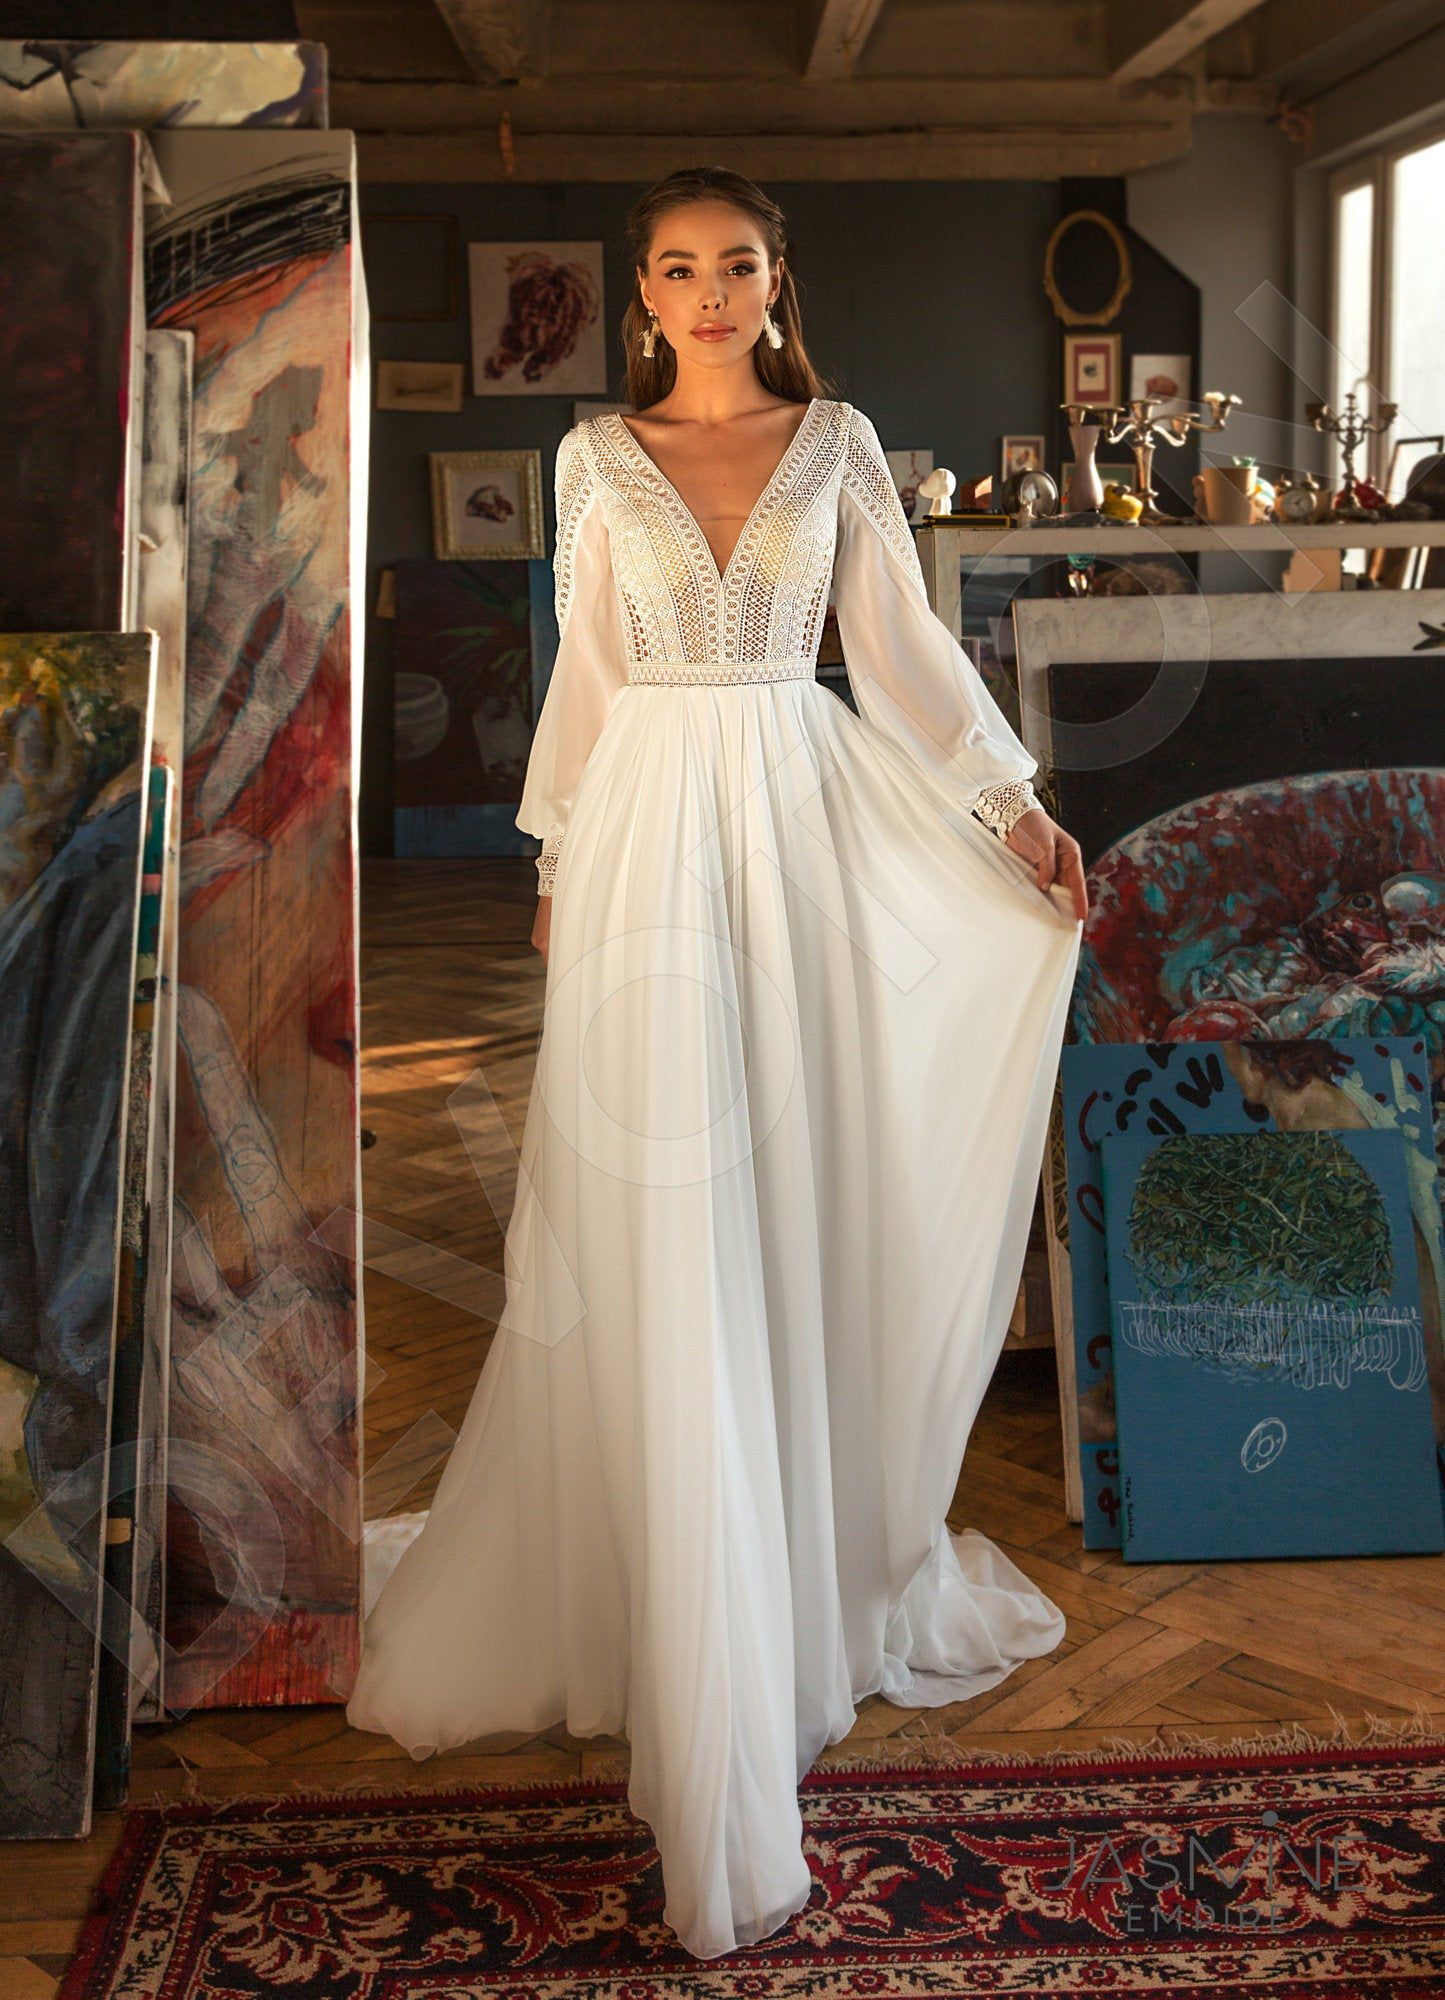 New Wedding Dresses Exclusively Yours Bridal Boutique  Lovebirds Bridal Boutique Local Bridal Boutique Bridal Couture Miami Free Shipping